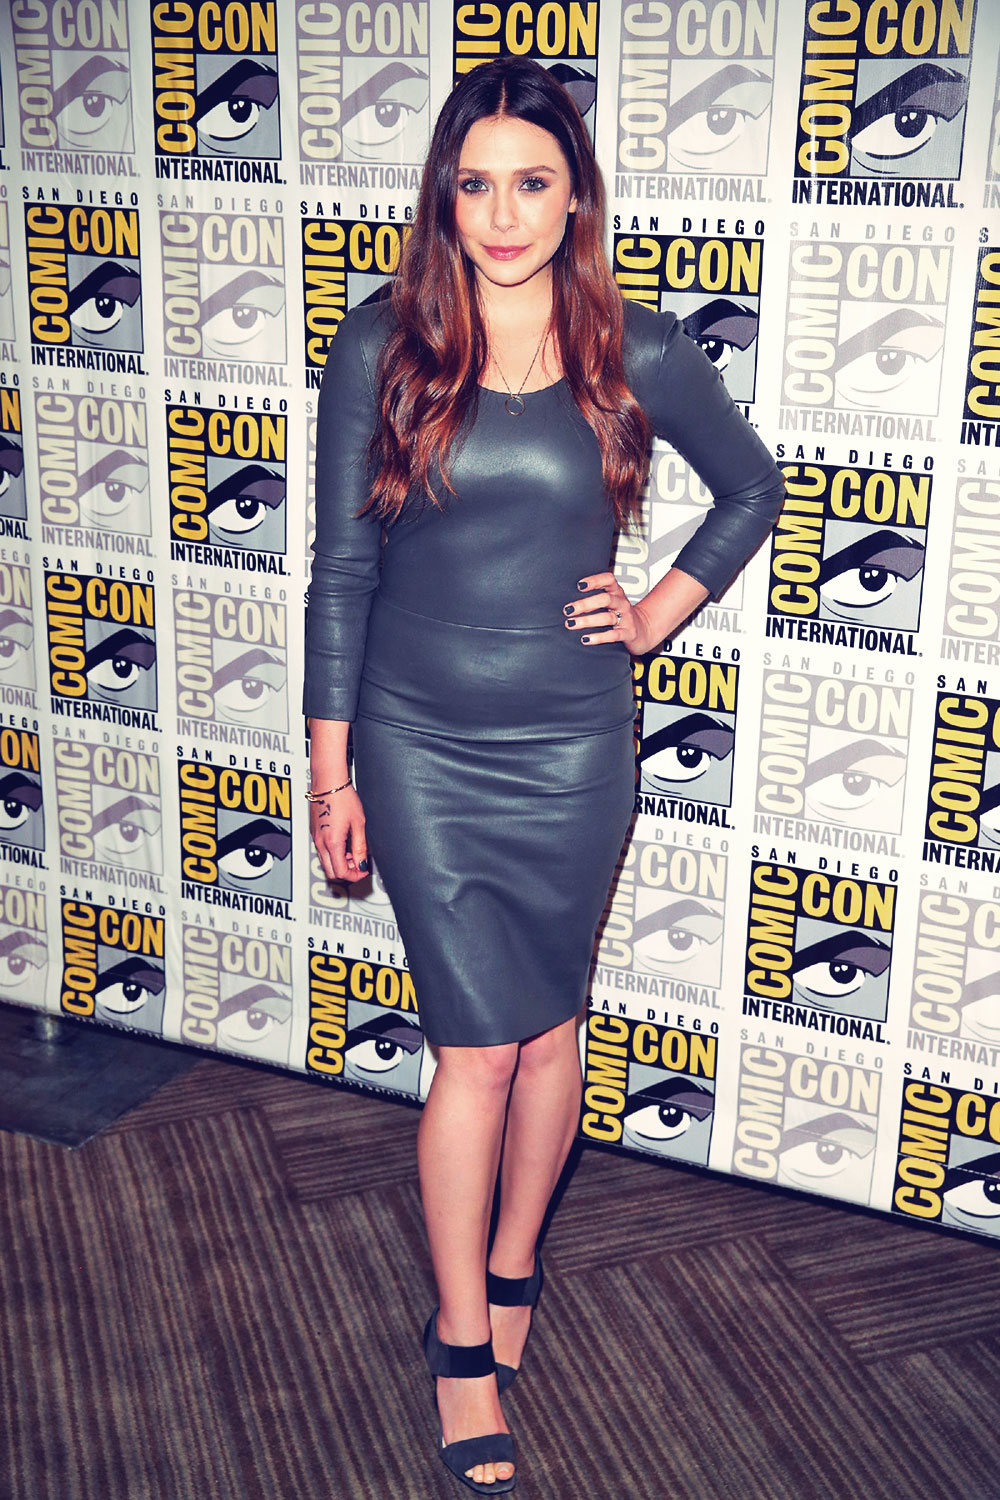 Elizabeth Olsen attends Avengers Age of Ultron Press Line at Comic-Con